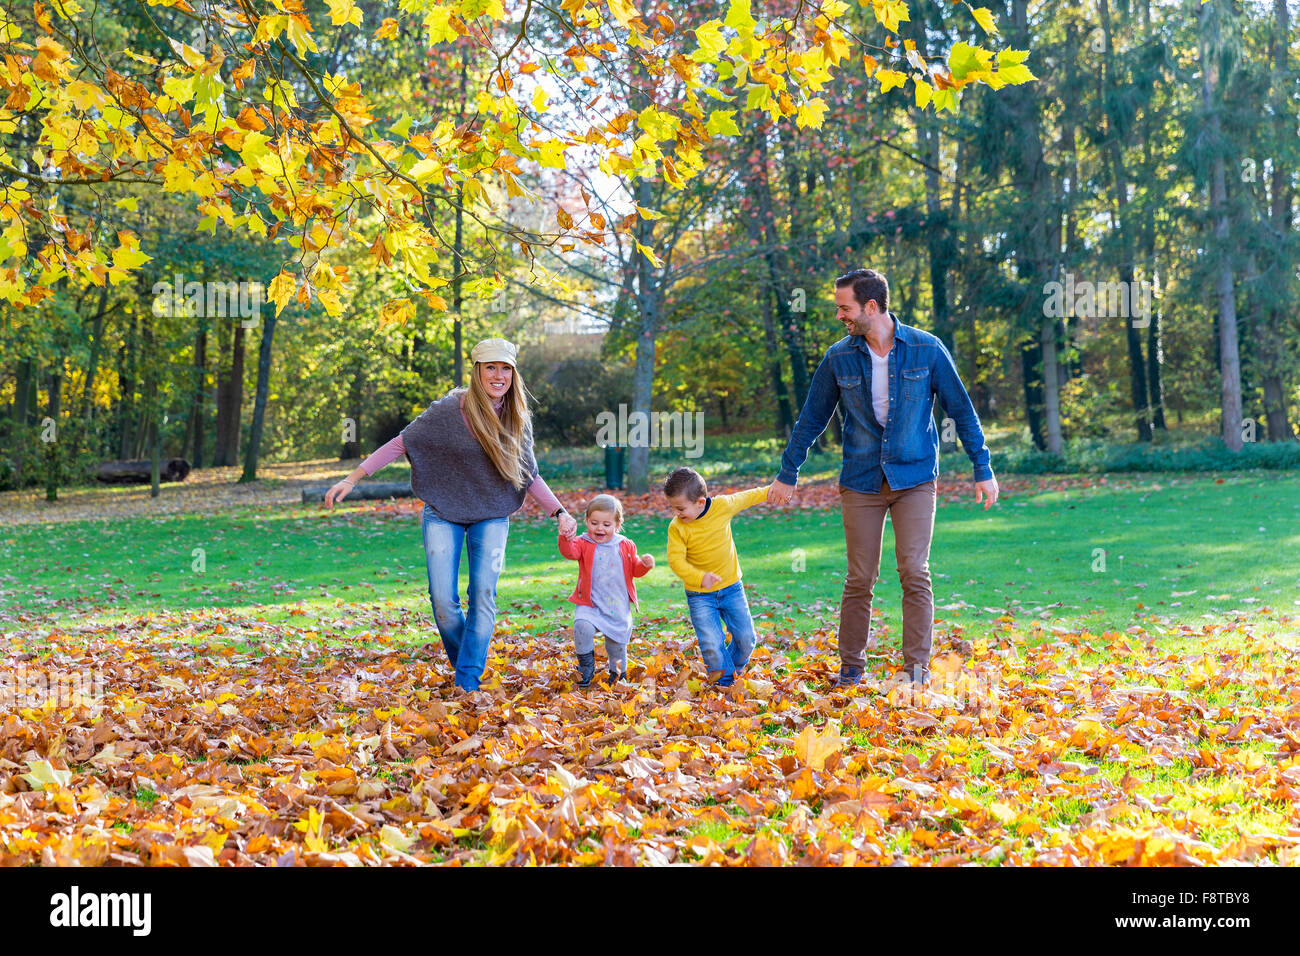 Family walking in park Photo Stock